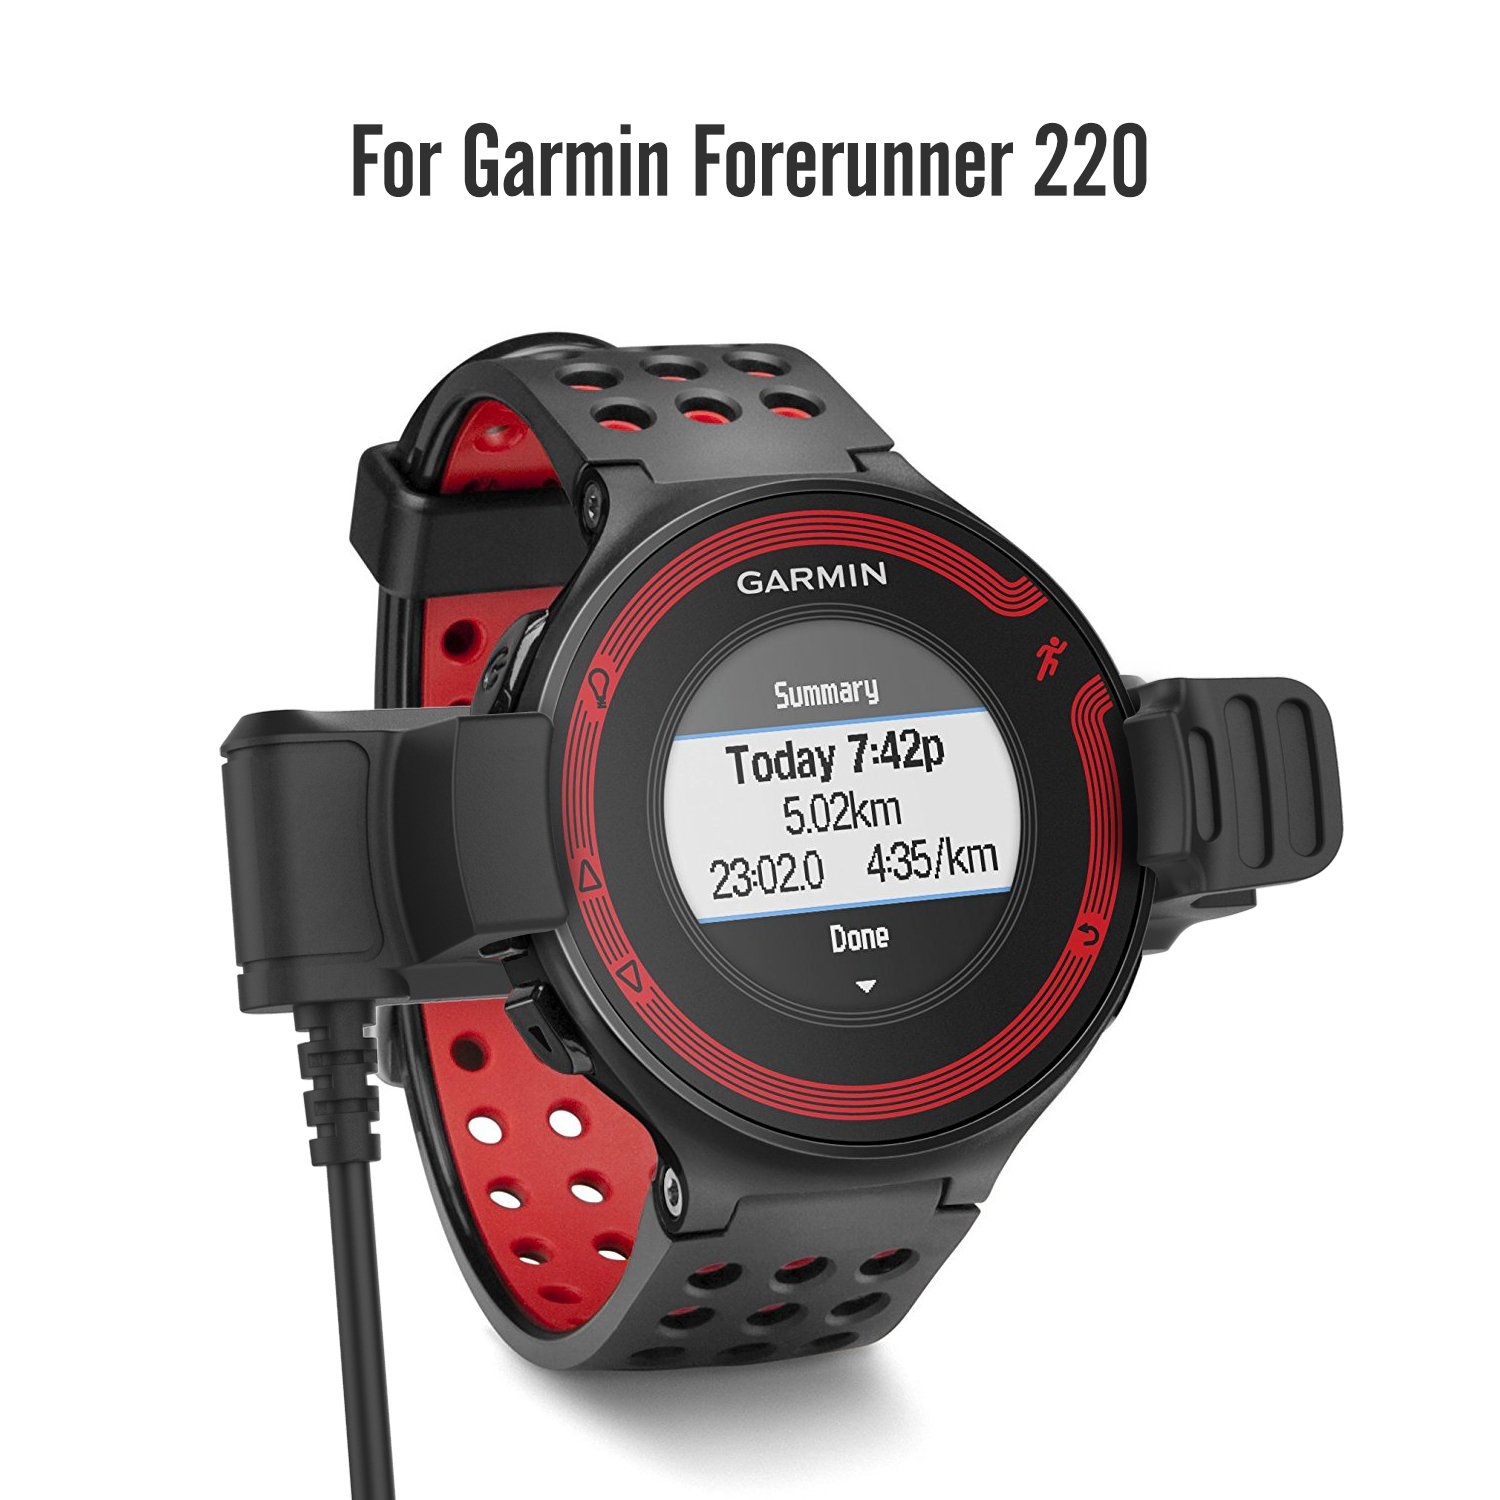 Garmin Forerunner 220 Charger Dock, MoKo USB Data Sync Charge Cradle Dock Charger with 1M Charging Cable for Garmin Forerunner 220 Smart Watch, Black by MoKo (Image #2)